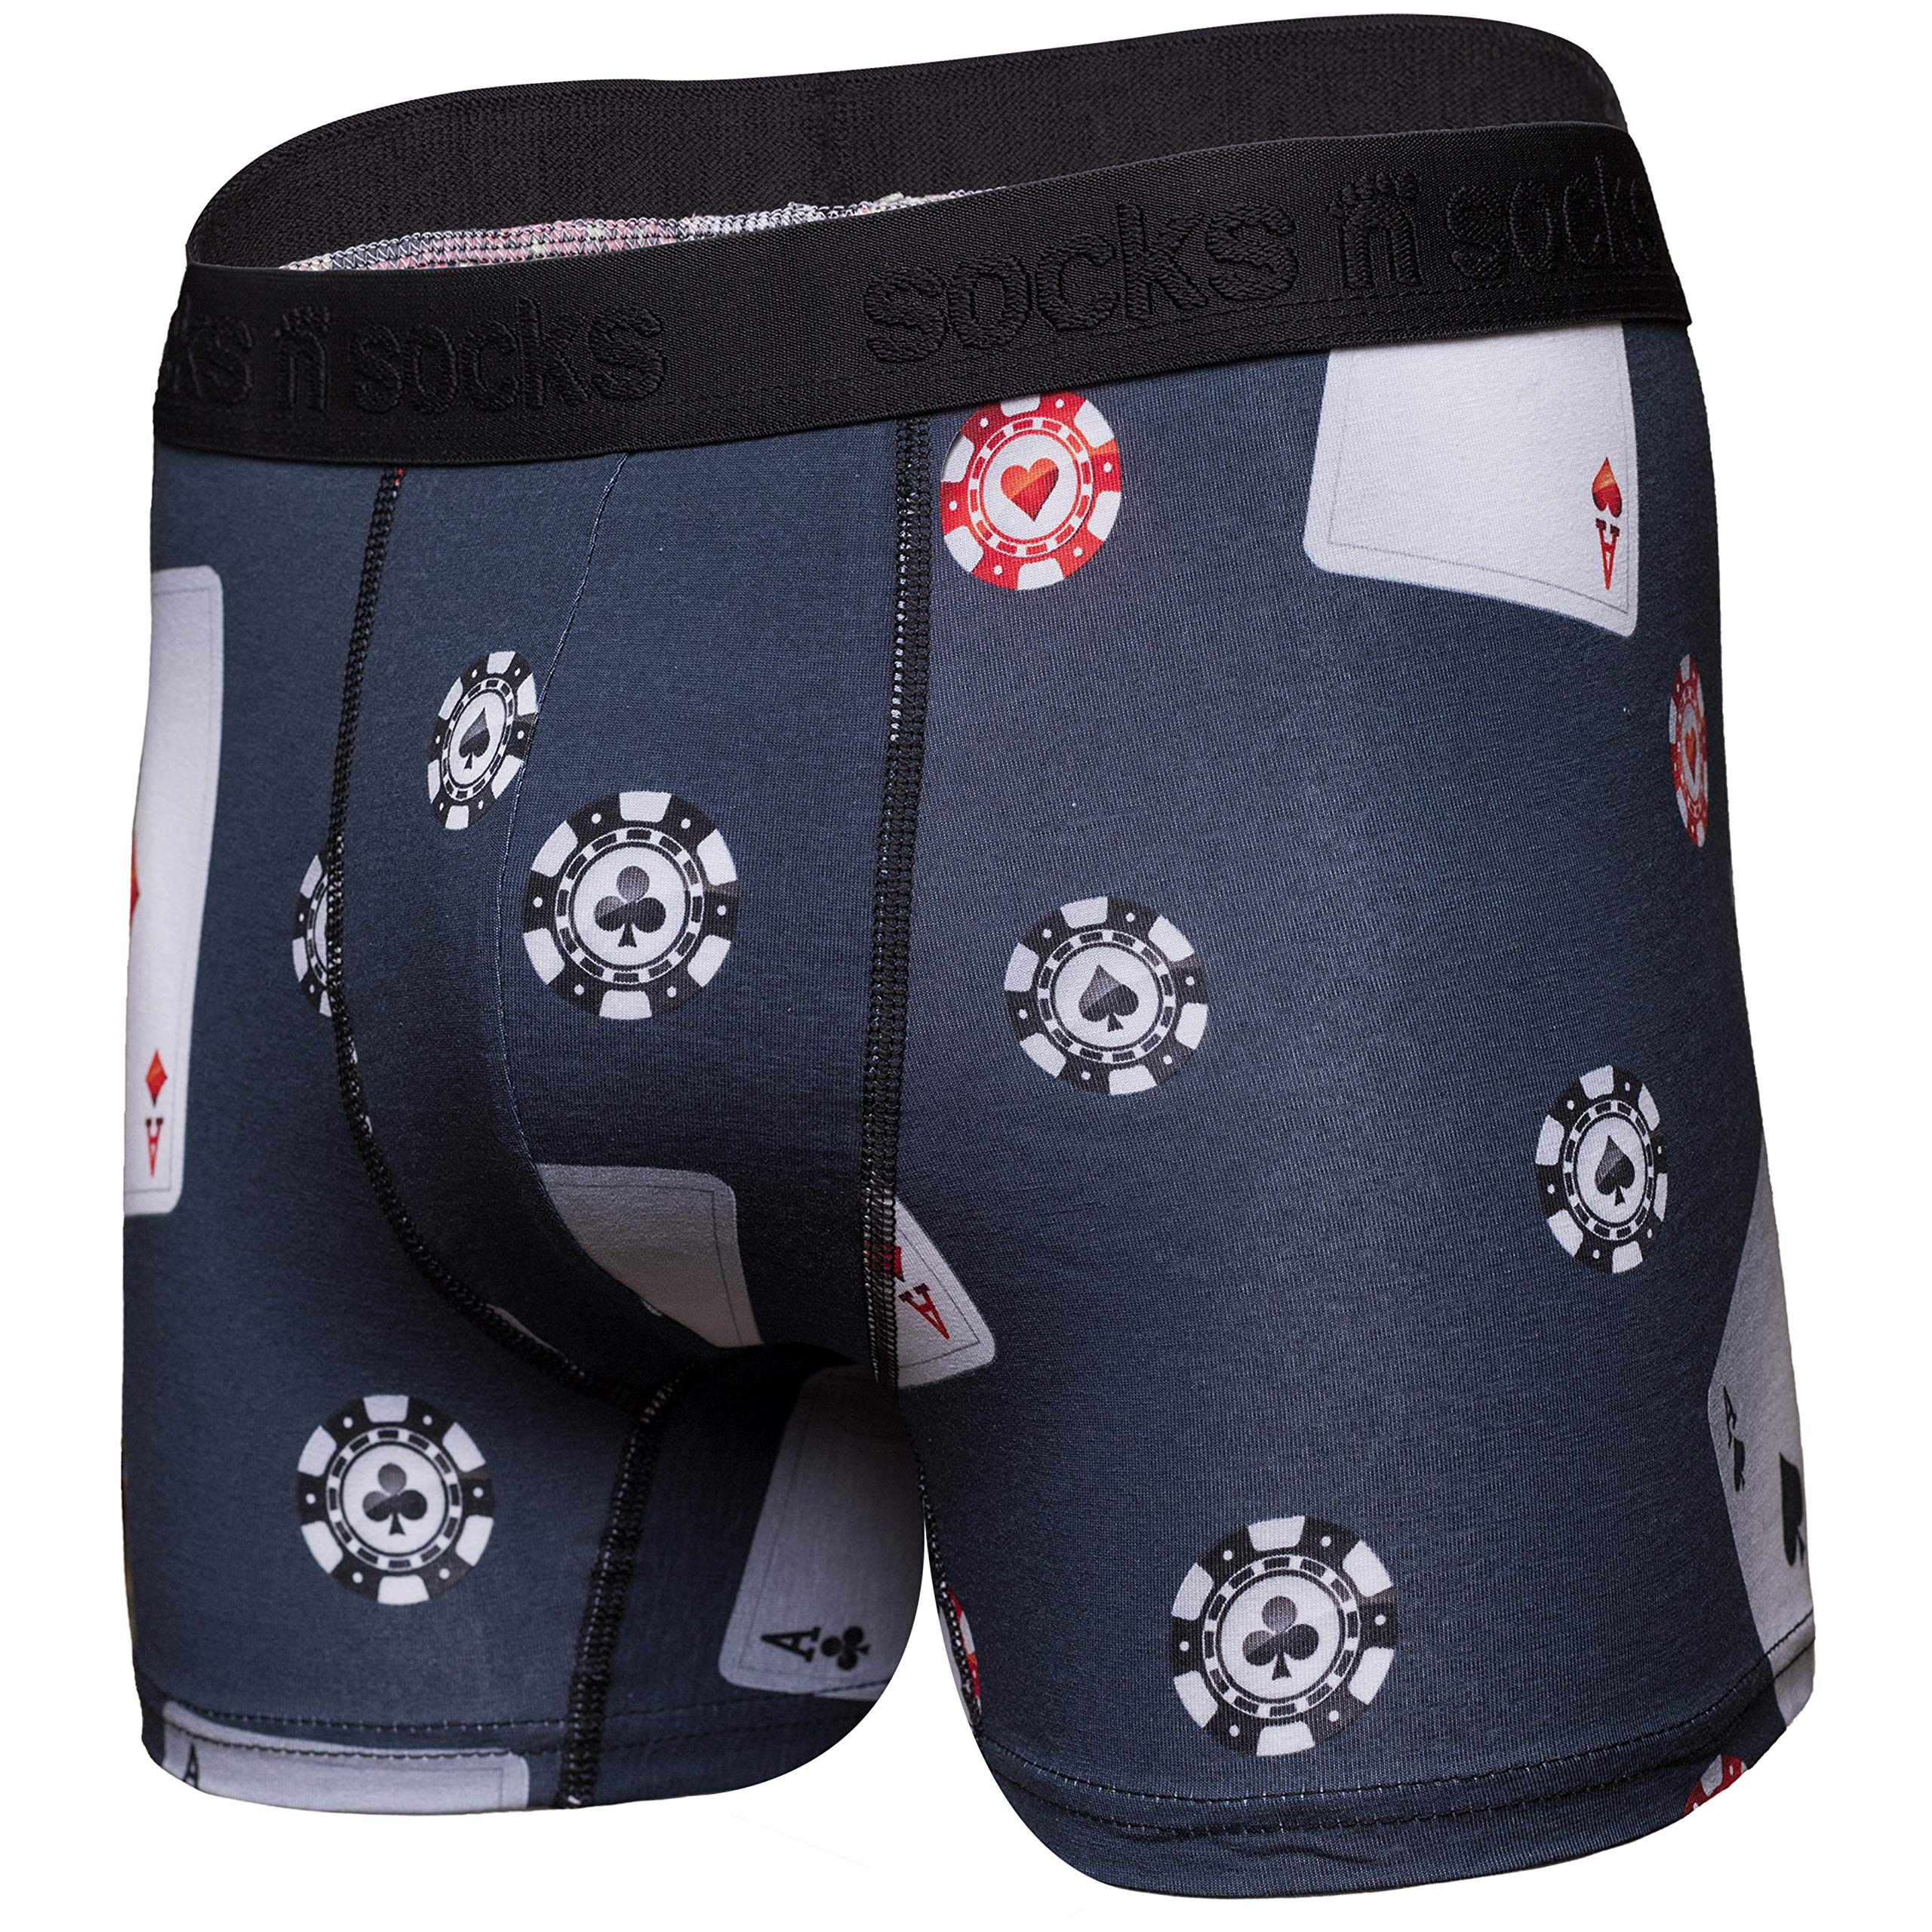 Image of Gambling Cards and Poker Chips Boxer Briefs for Men